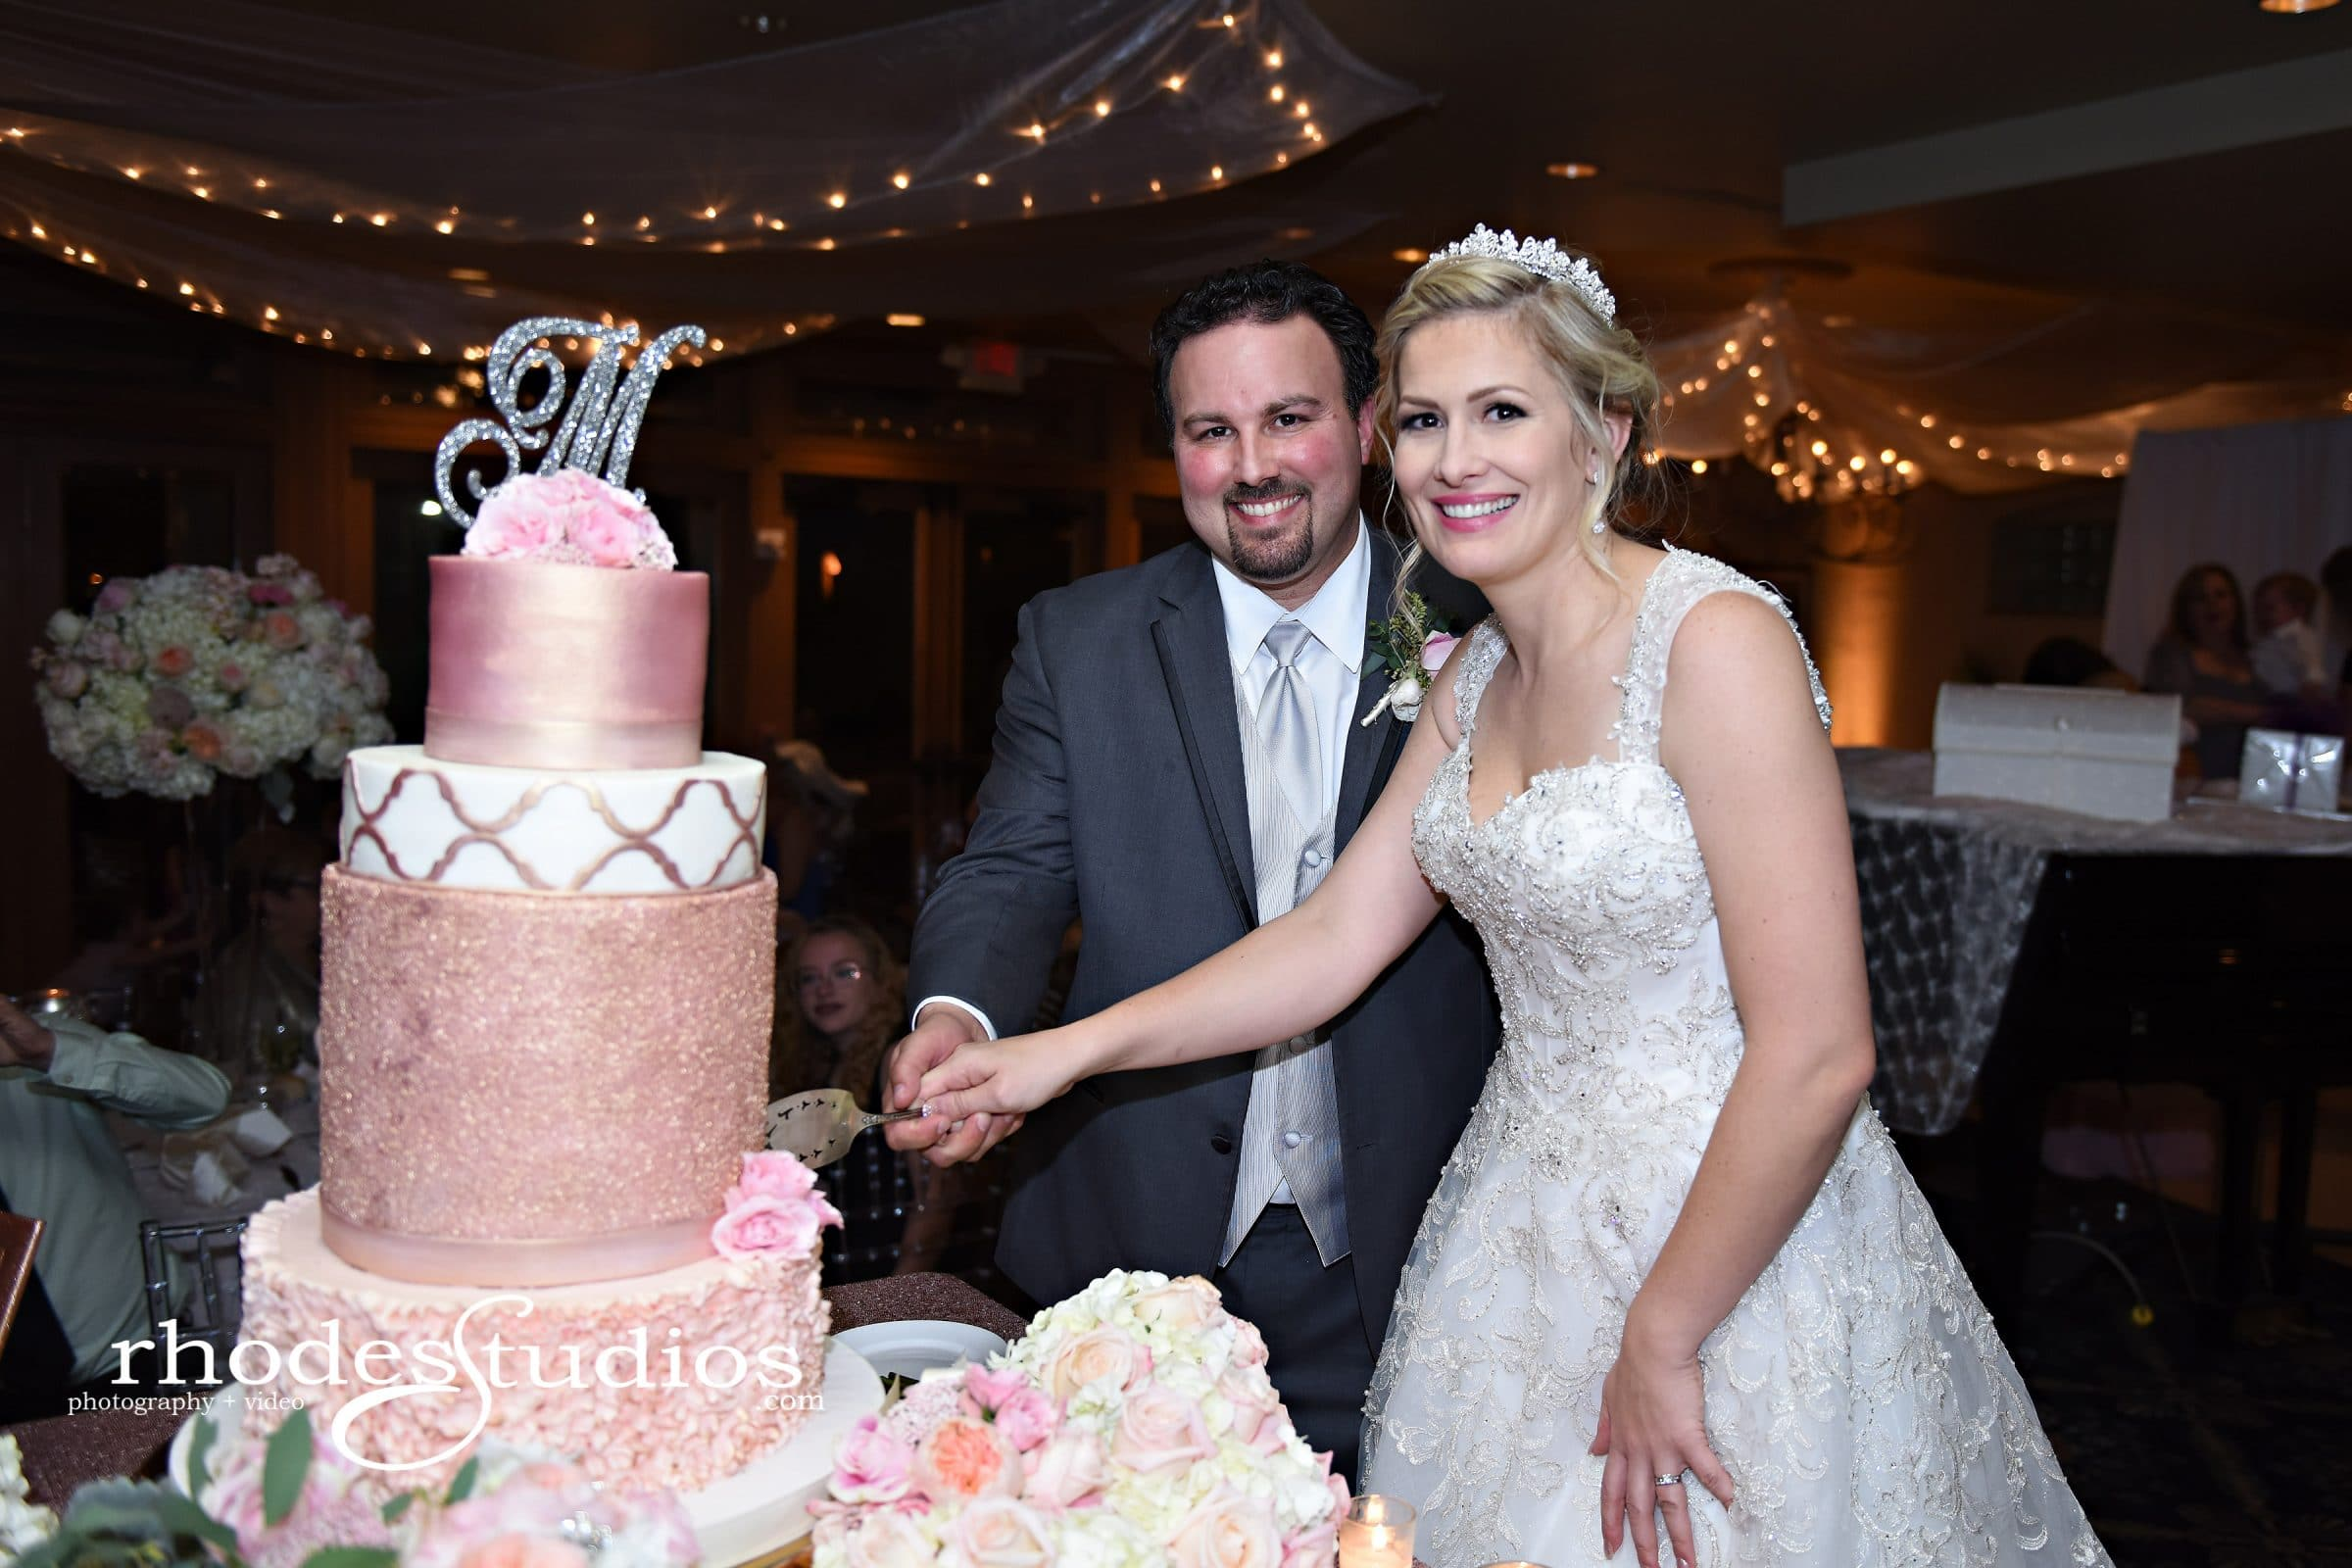 Bride and groom smiling while cutting large pink wedding cake